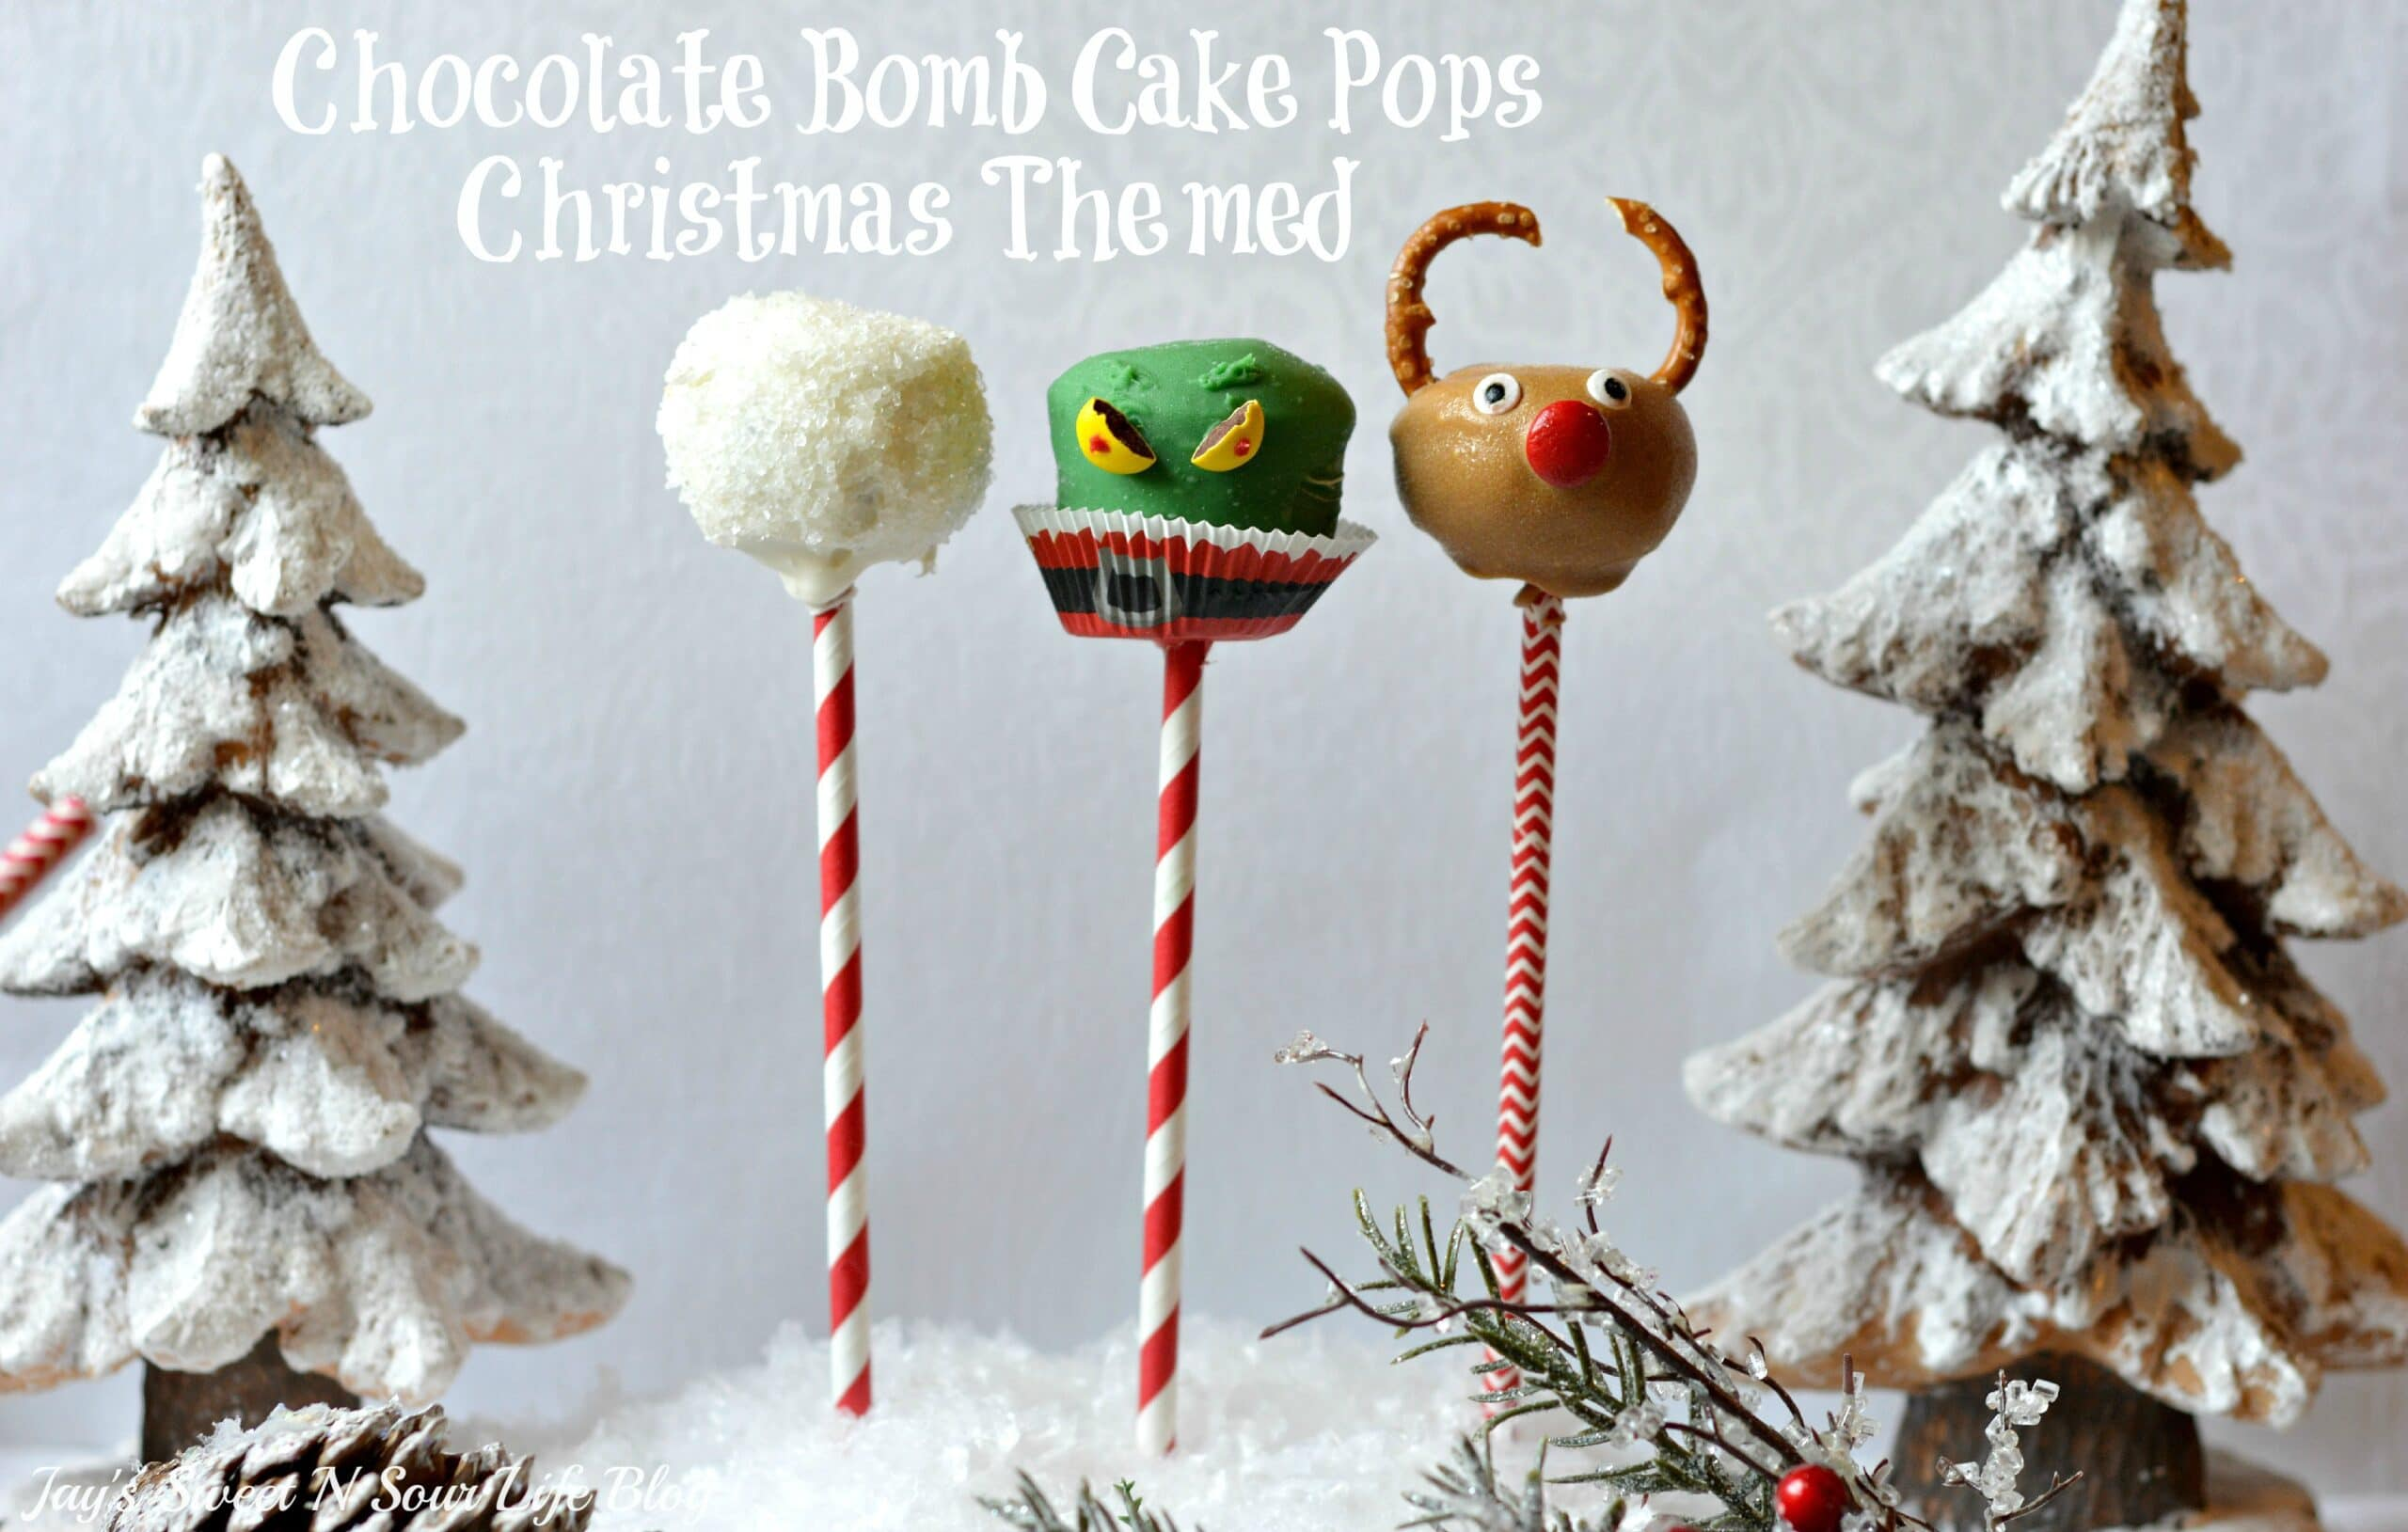 These Chocolate Bomb Cake Pops will melt in your mouth, perfect for holiday parties and get-togethers. These easy-to-make Christmas cake pops are made using a boxed cake mix, and a secret ingredient.